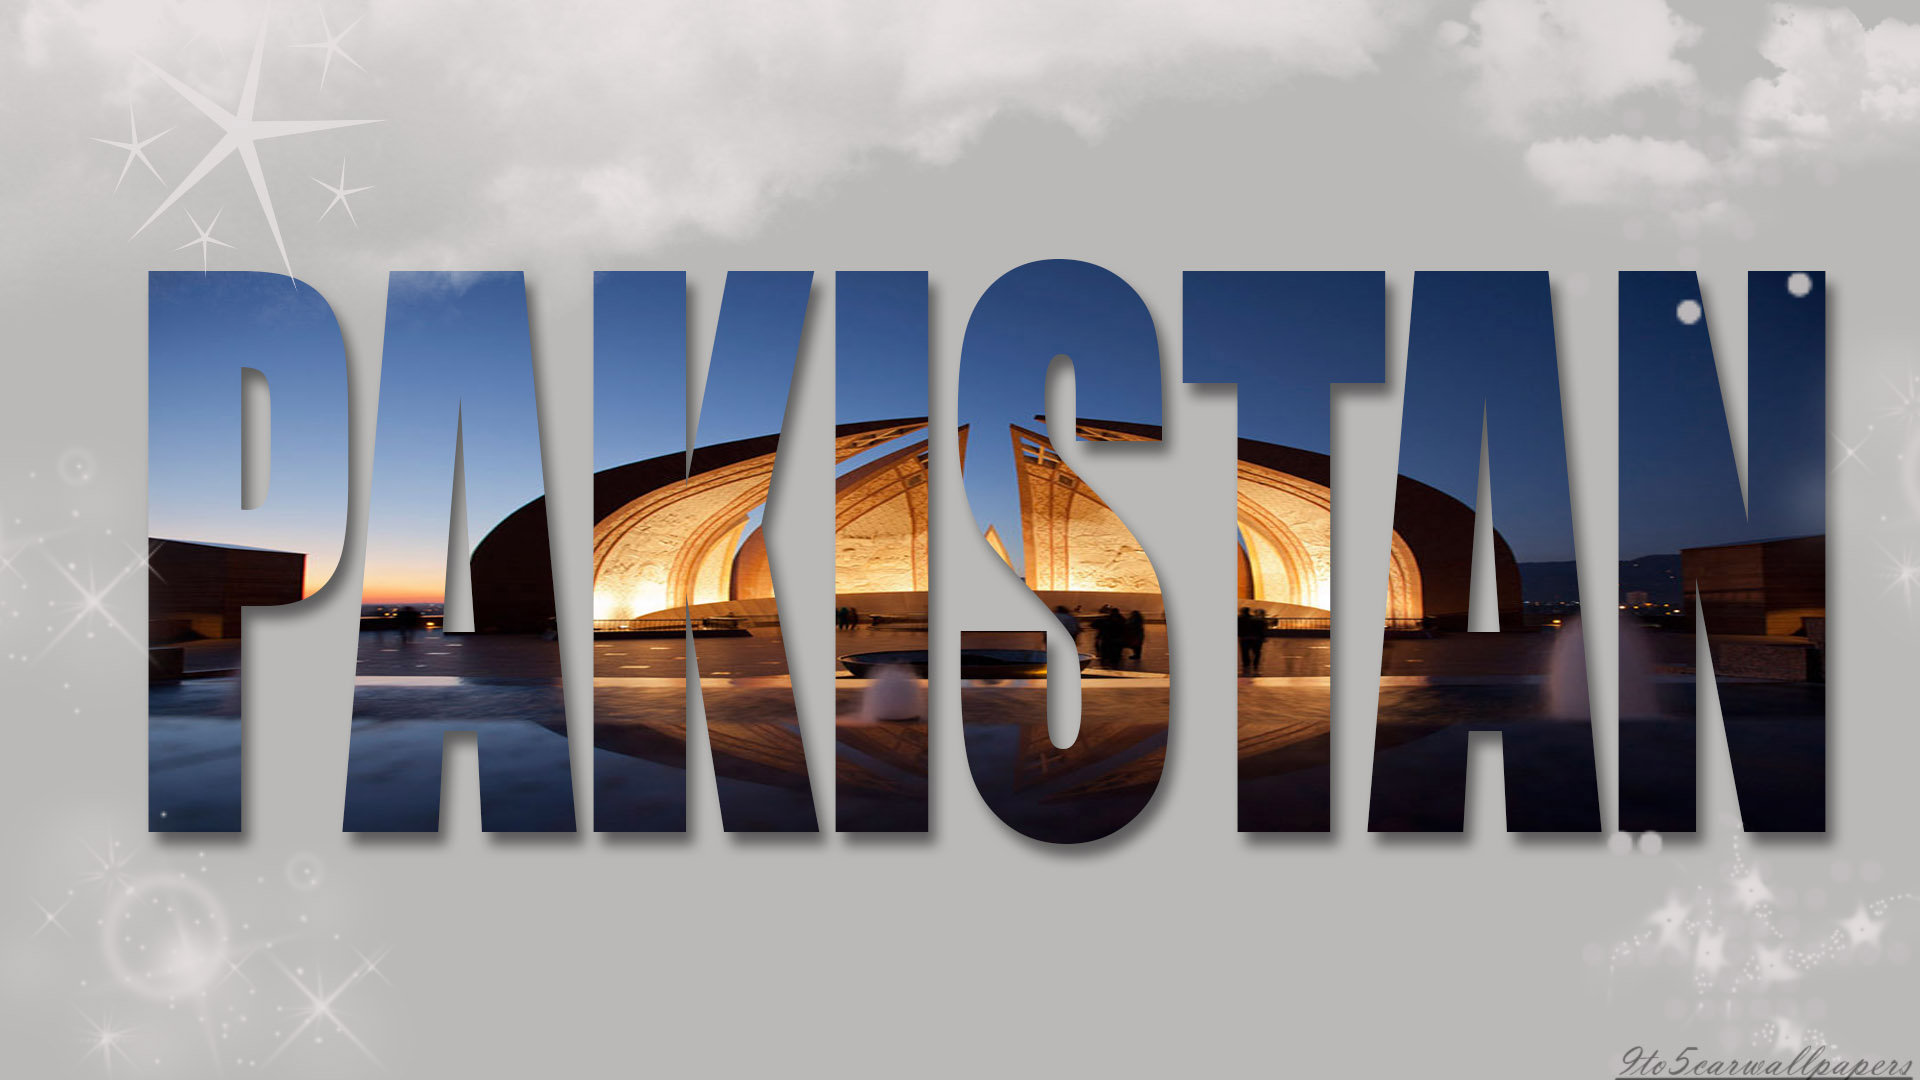 Pakistan a Land of Historical Places